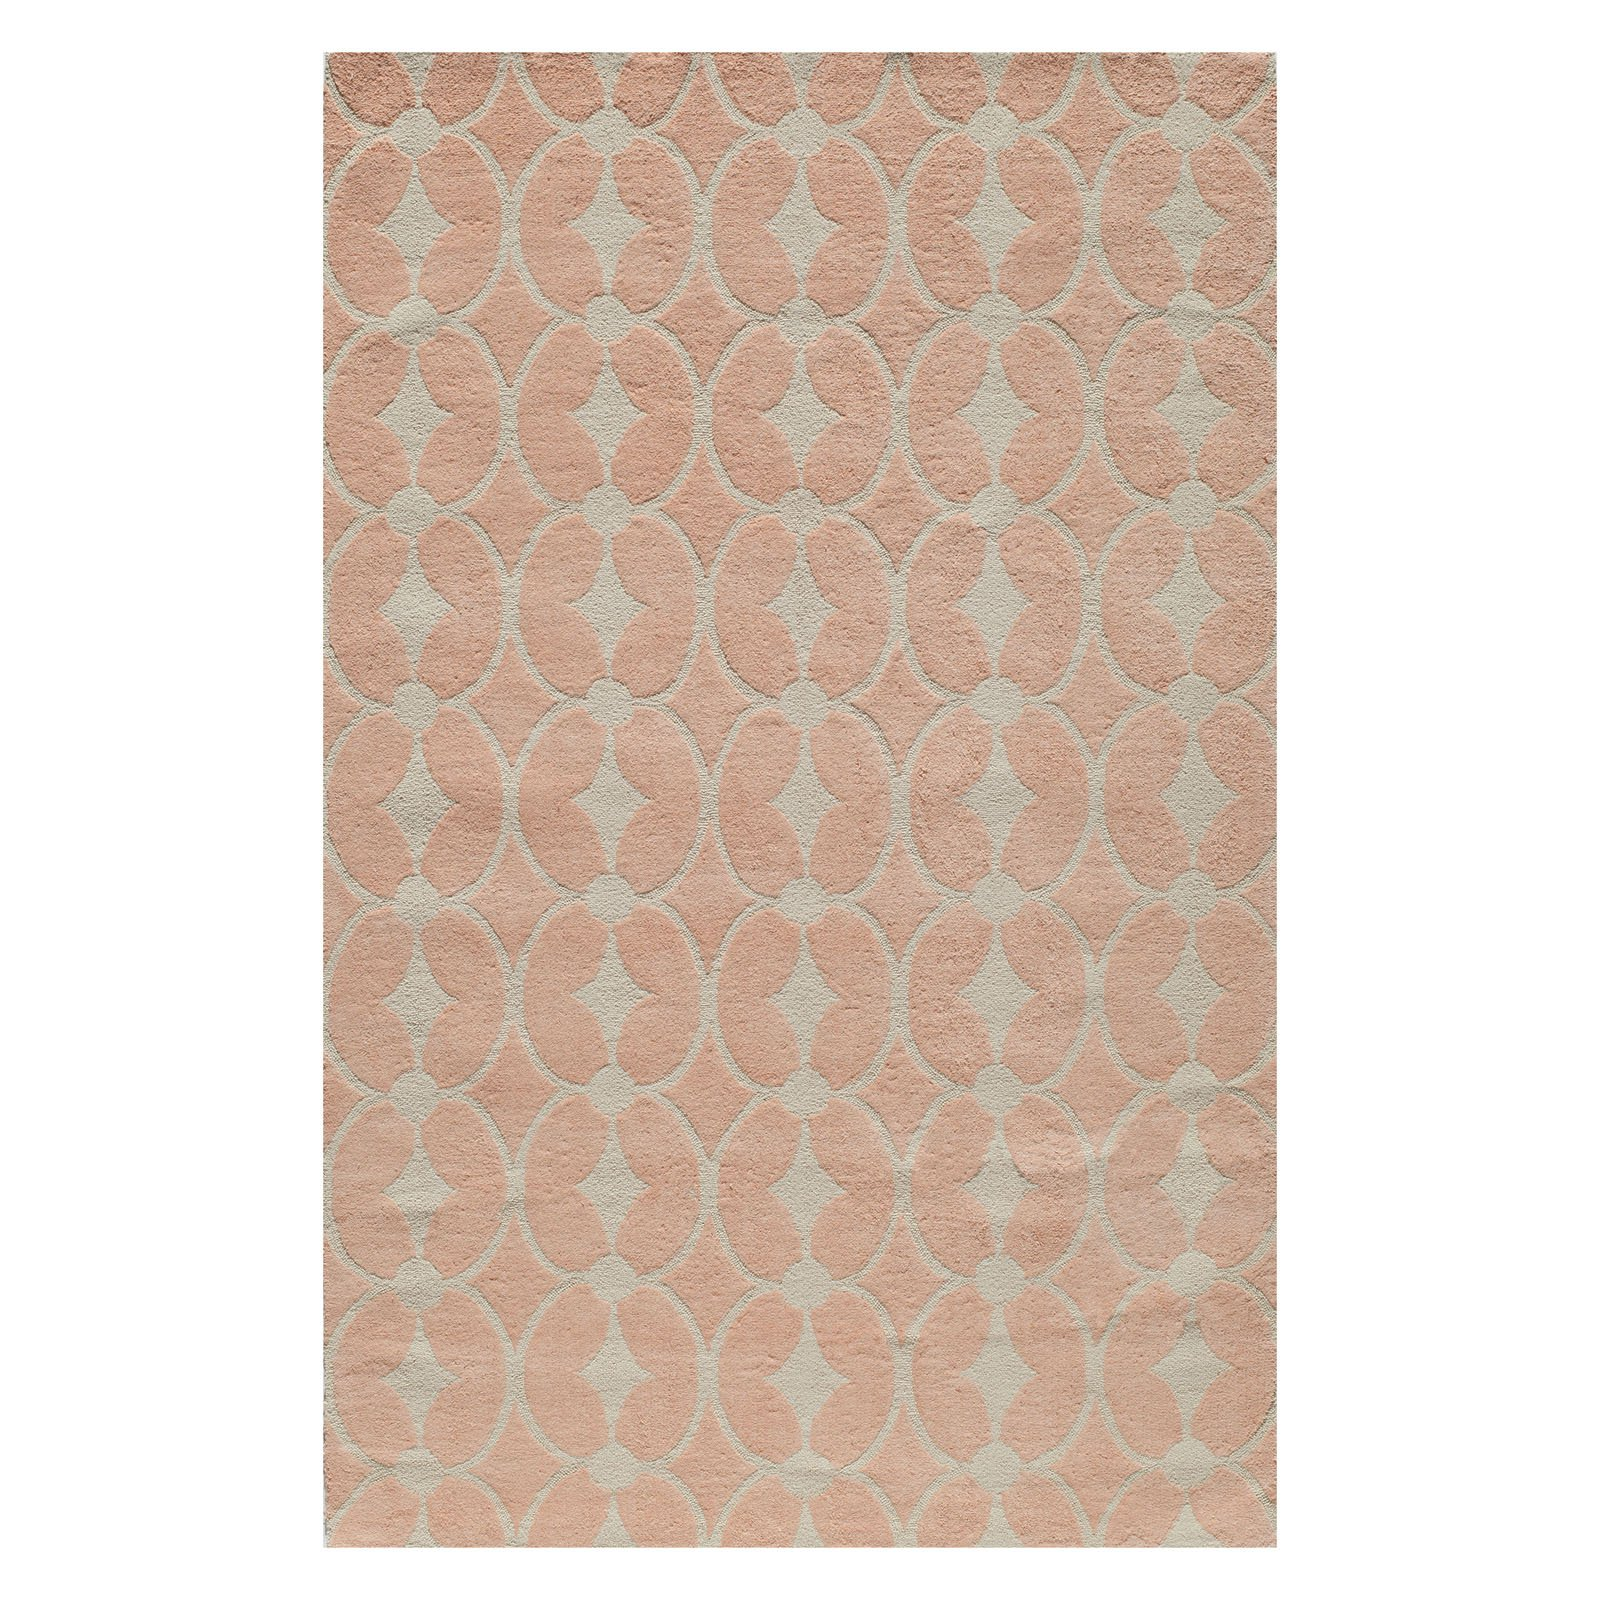 Momeni Lil Mo Classic Collection LMI-6 Rug